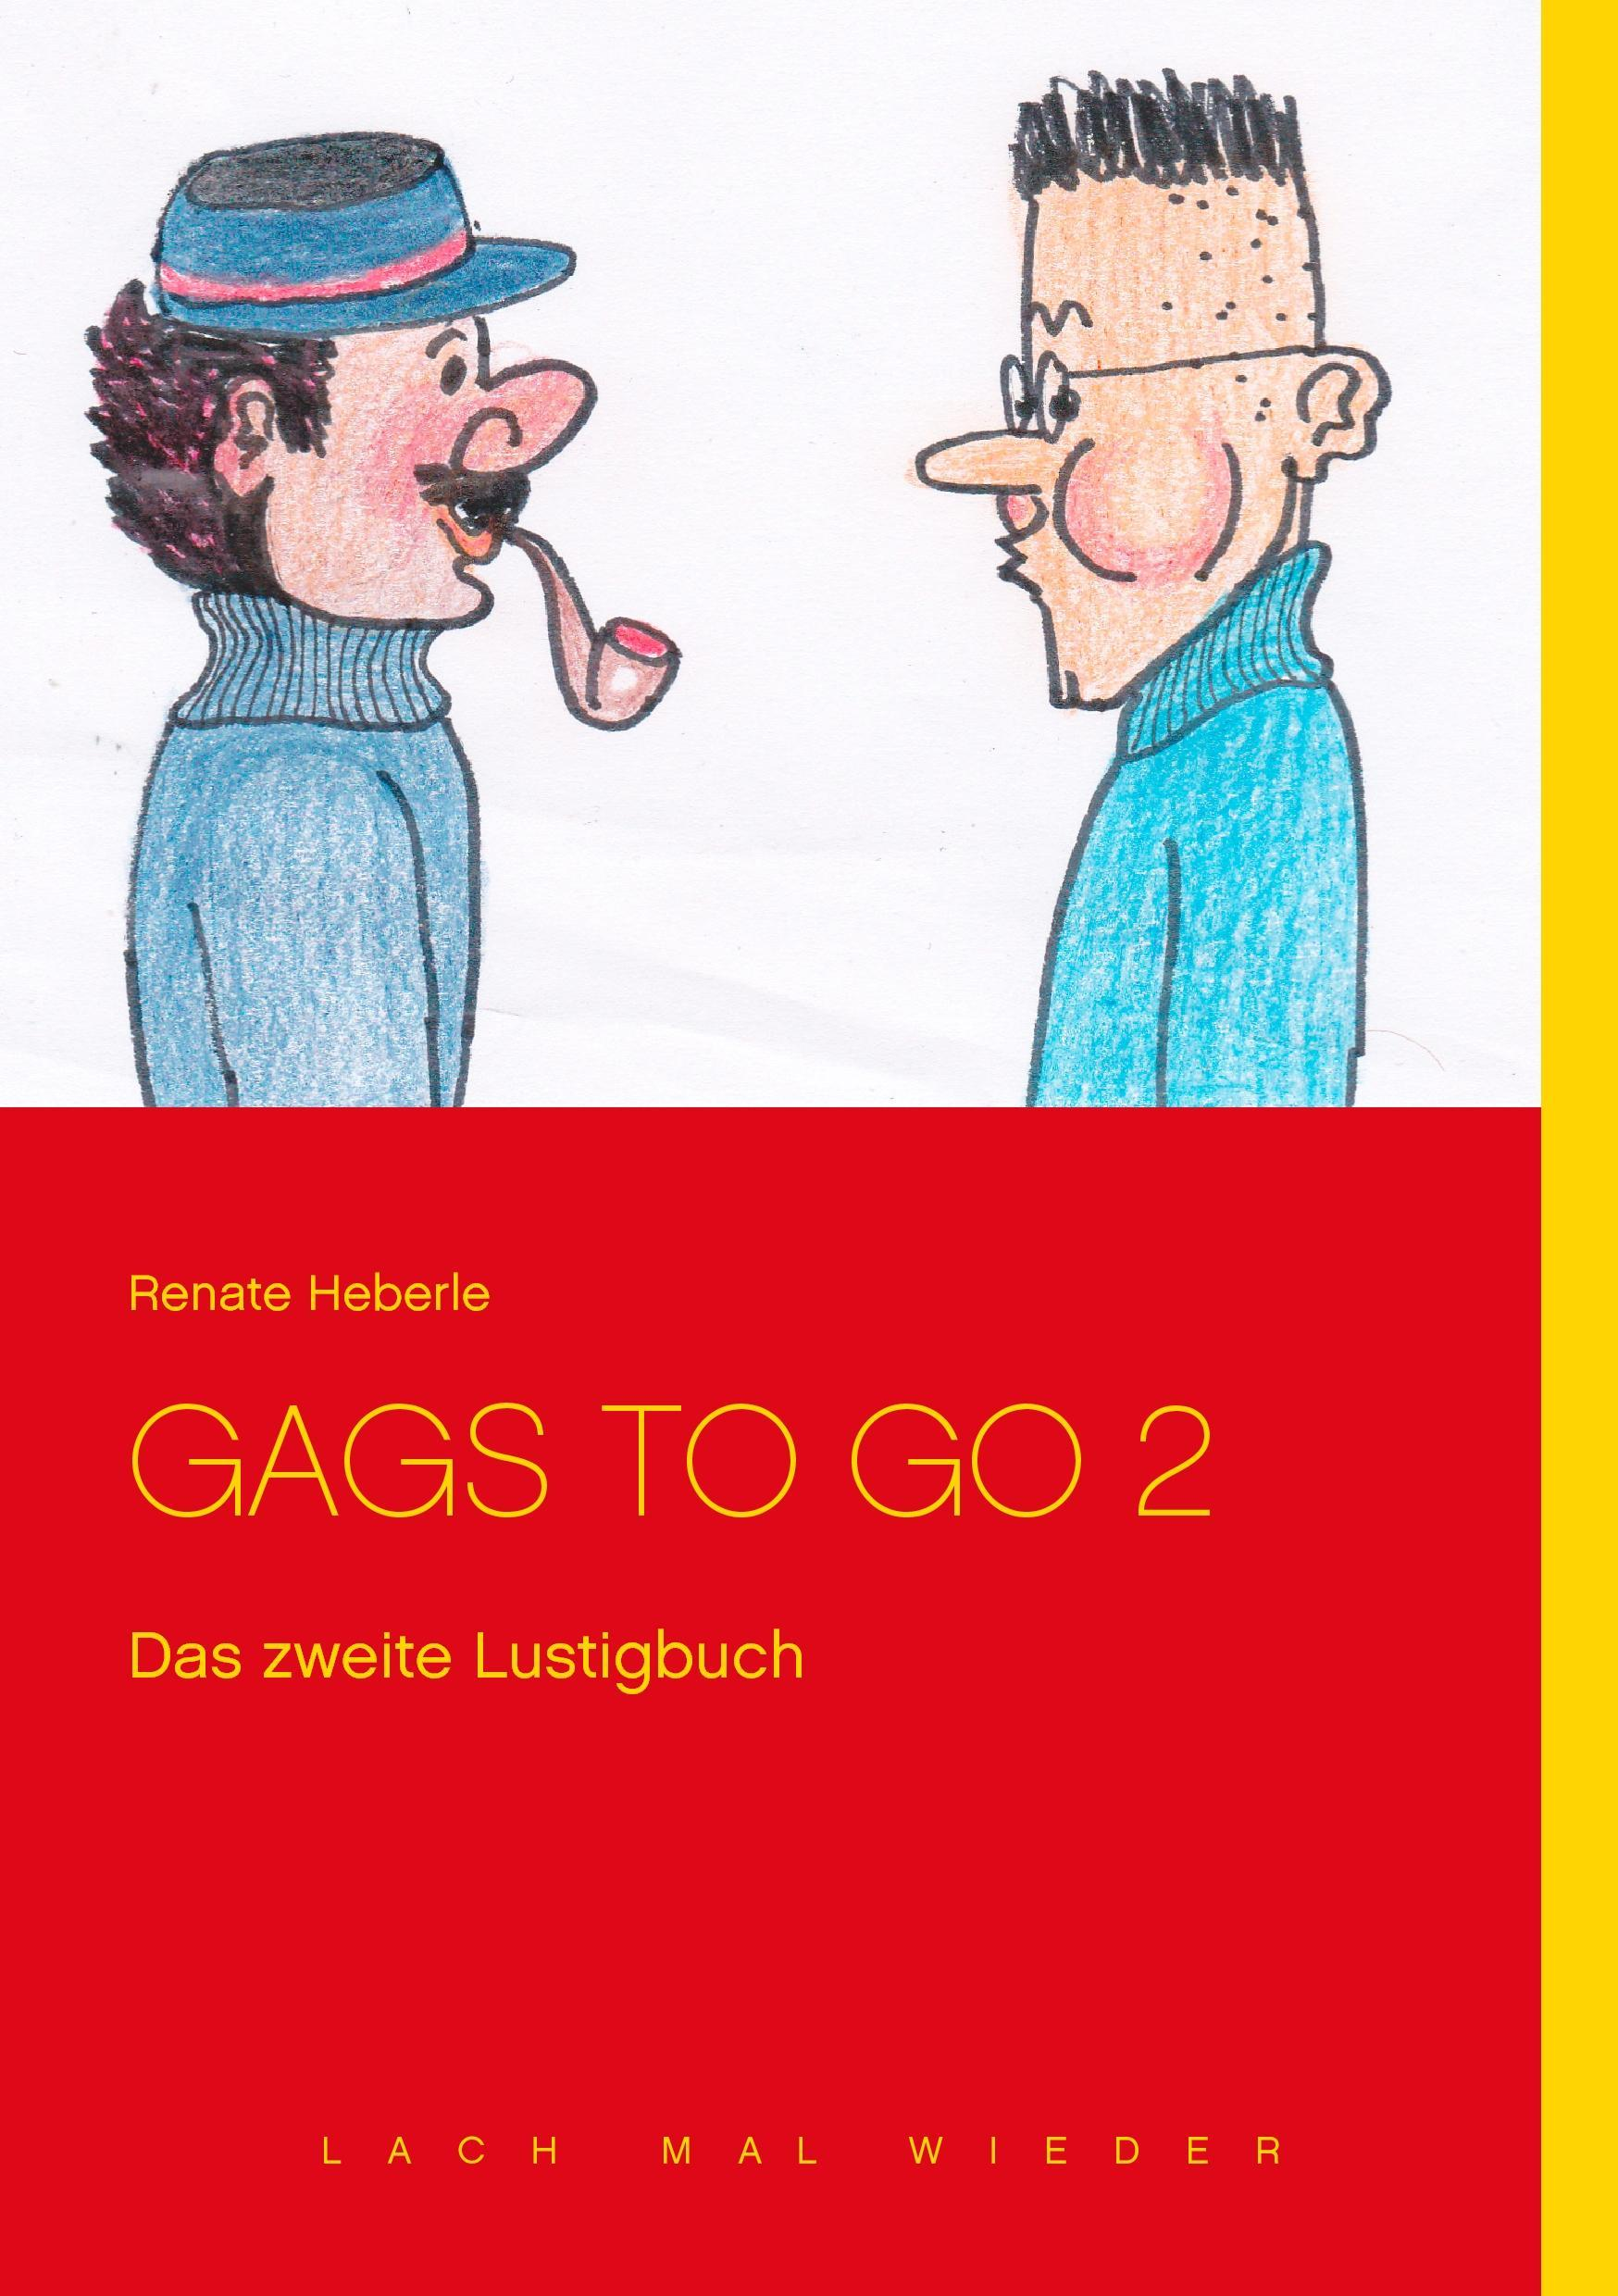 GAGS TO GO 2